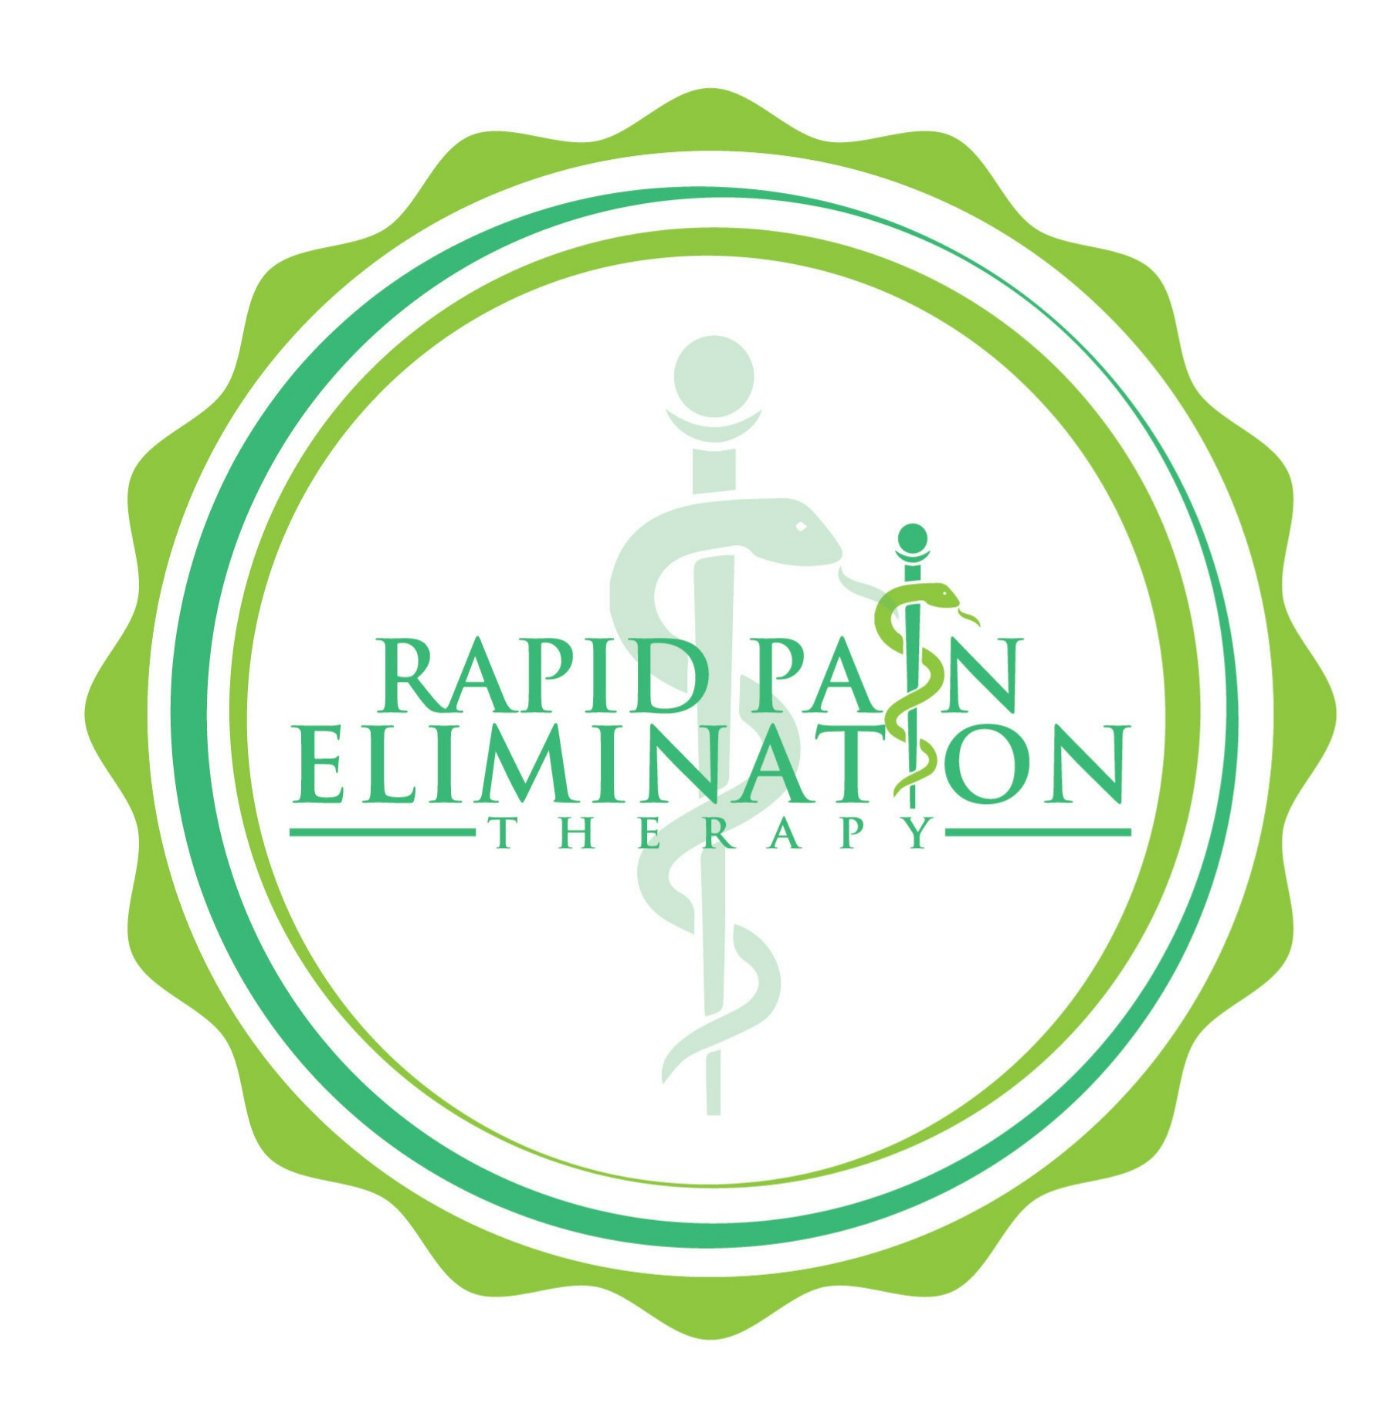 Rapid Pain Elimination Therapy.jpg